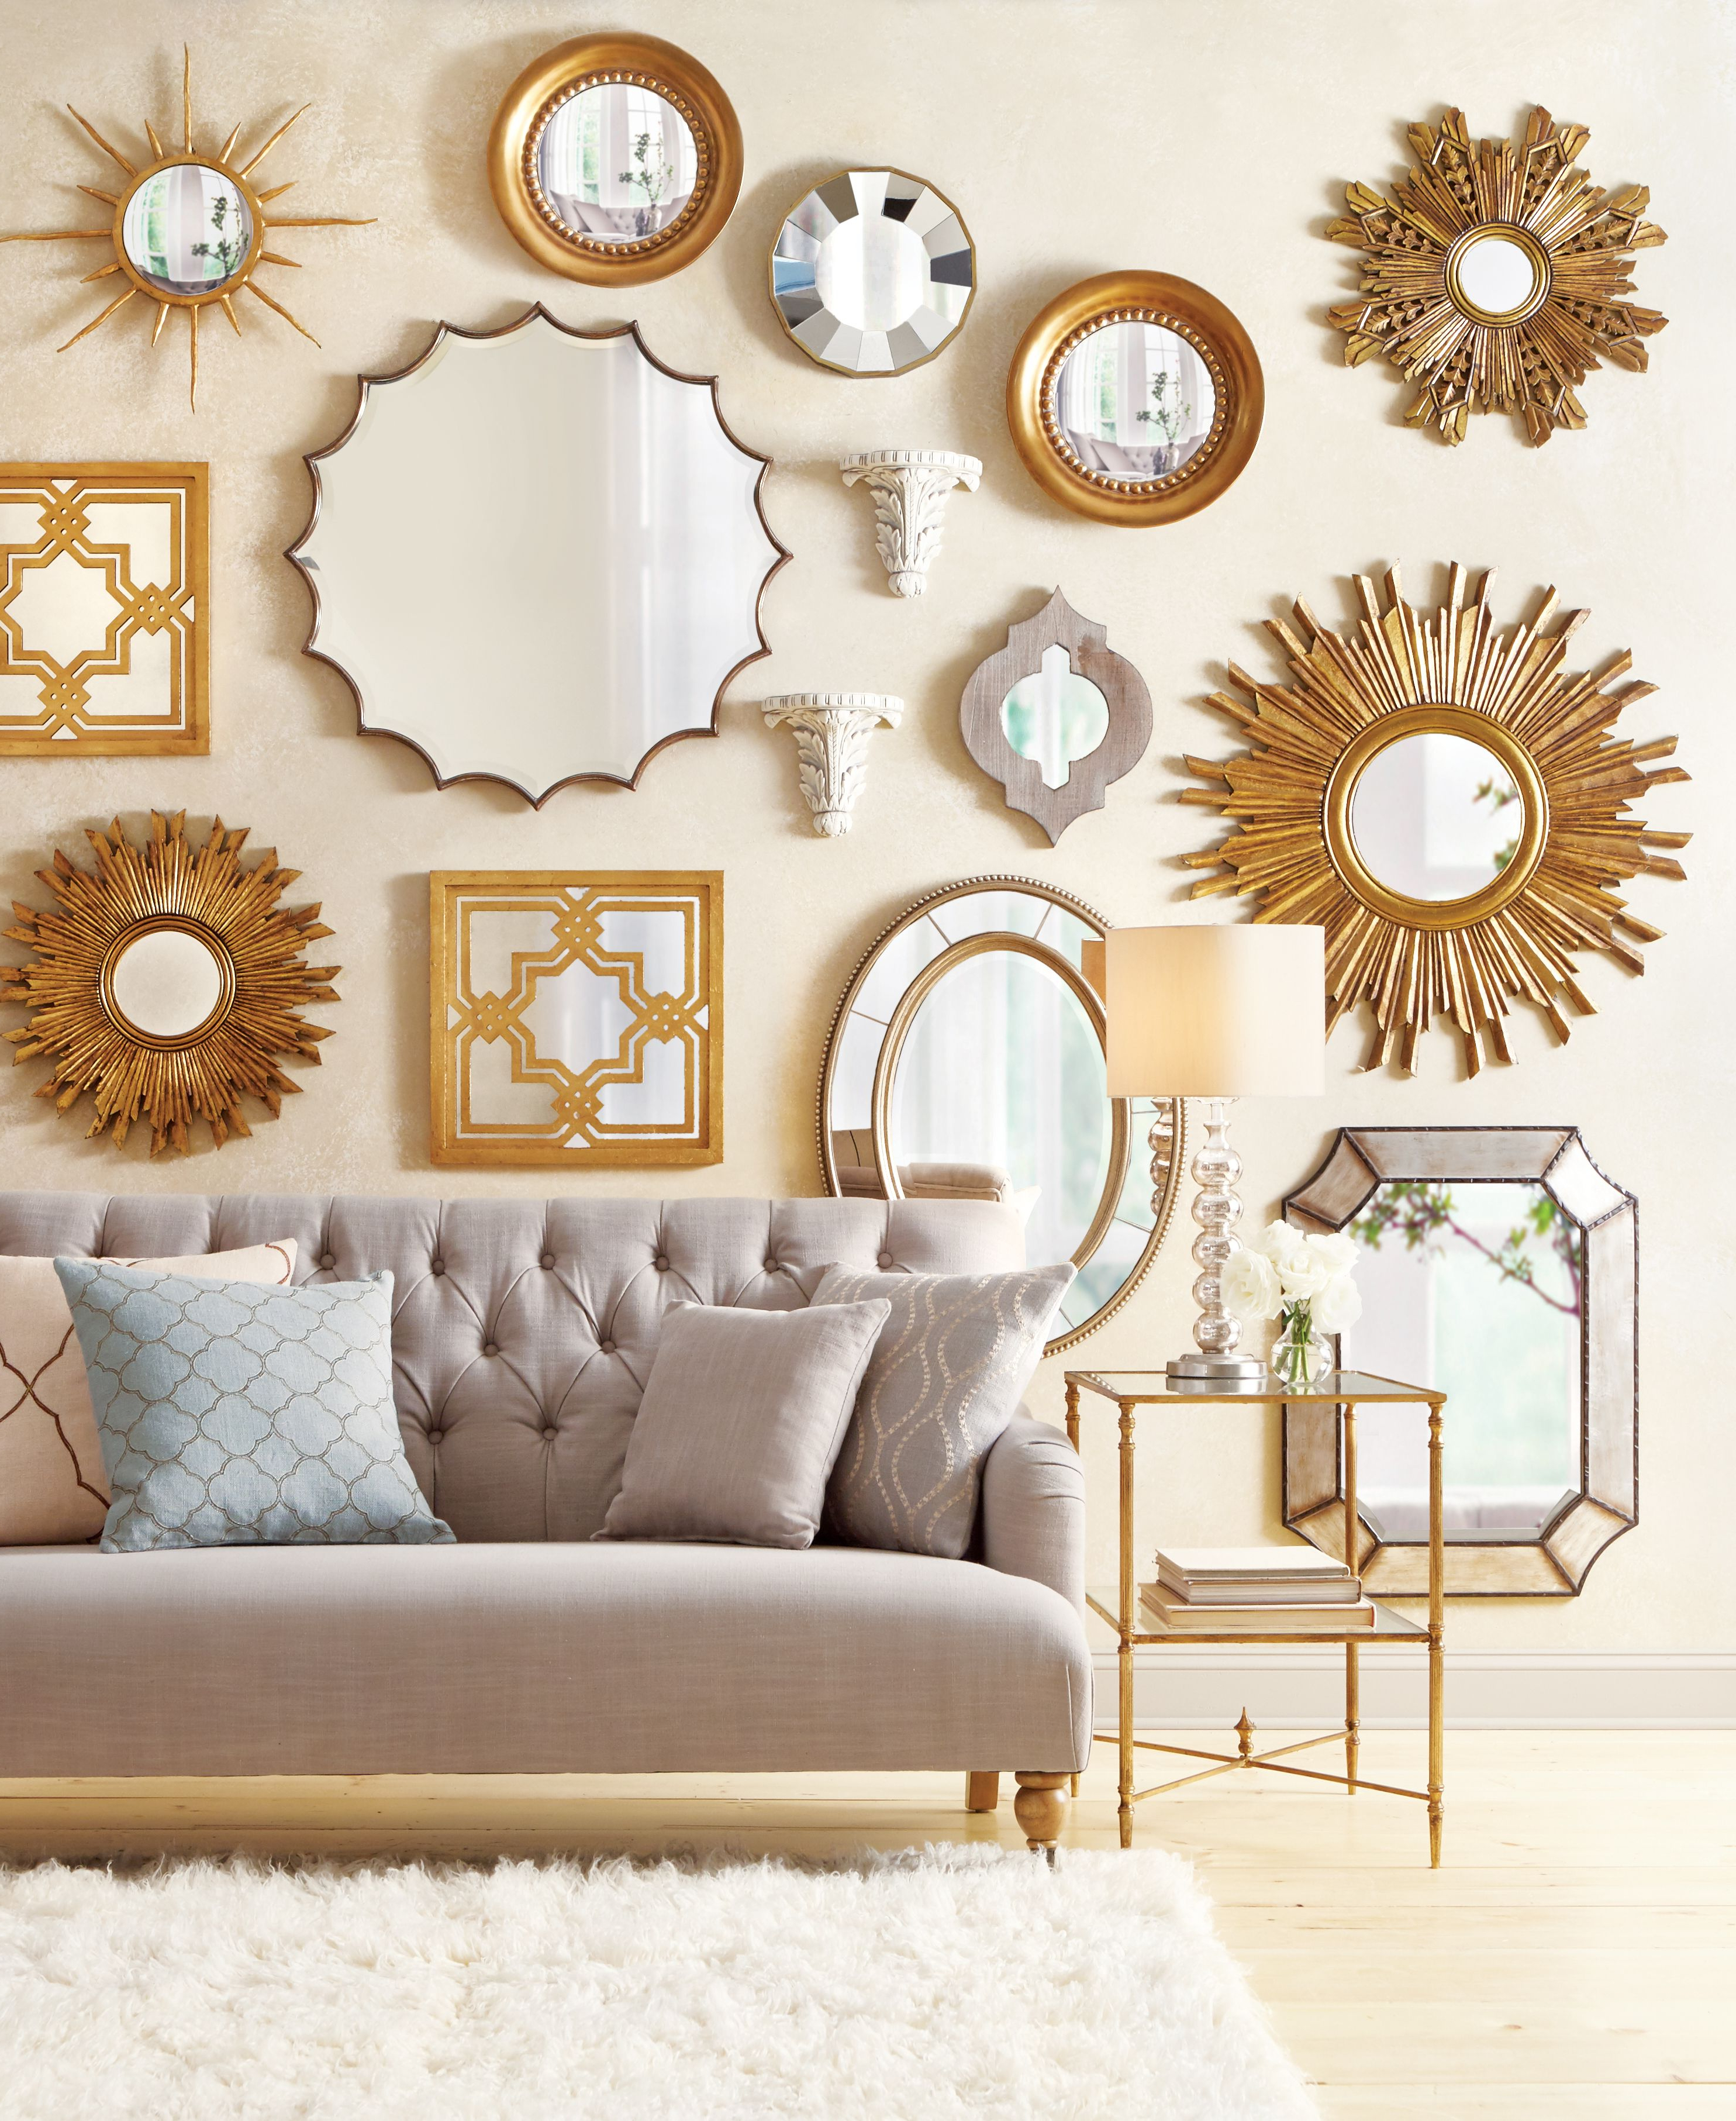 Newest Mirrors Make A Wall Stand Out So Well. Love This Gallery Wall Design Pertaining To Cheap Decorative Wall Mirrors (Gallery 16 of 20)